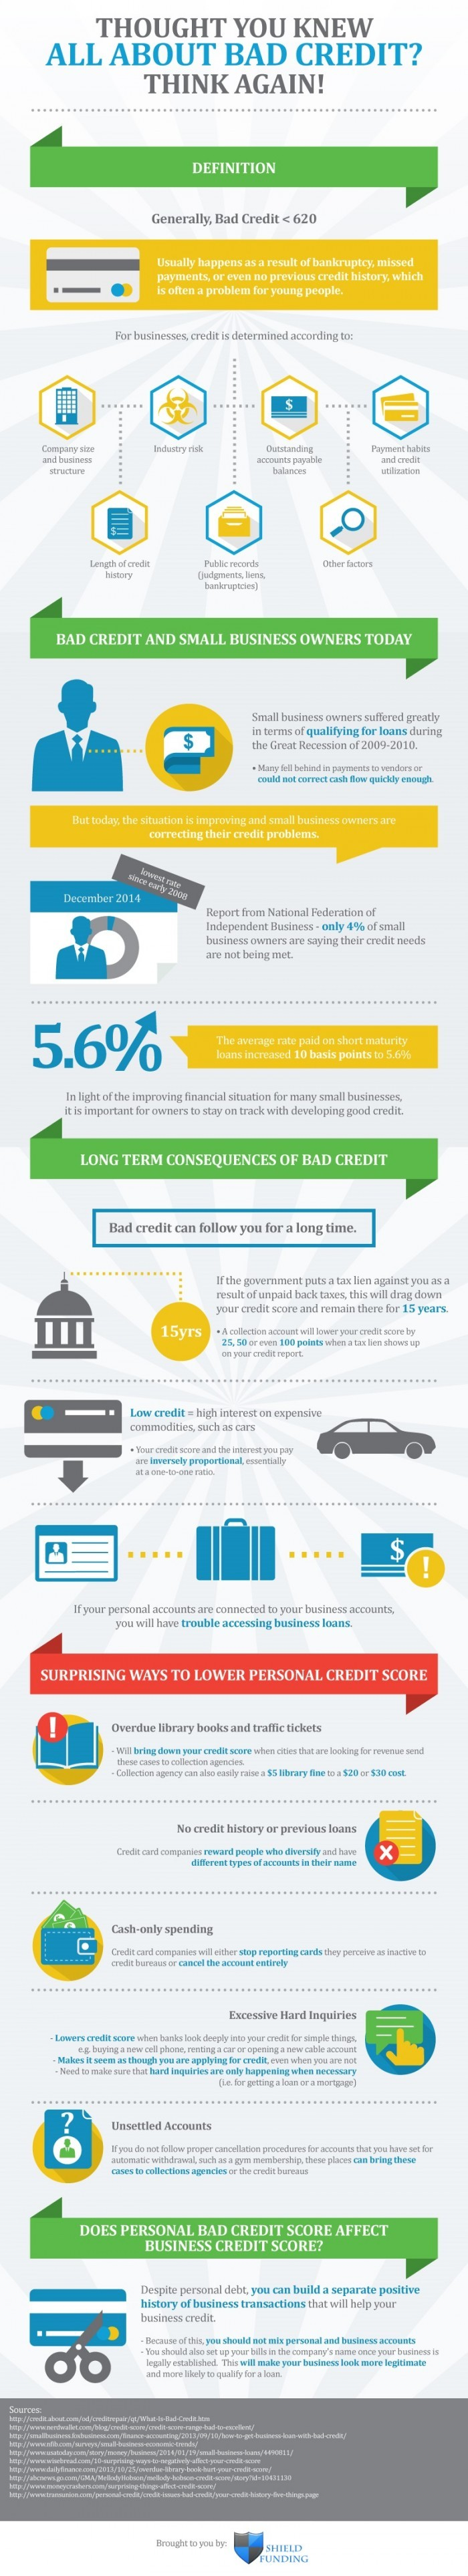 All-About-Bad-Credit-Infographic-plaza